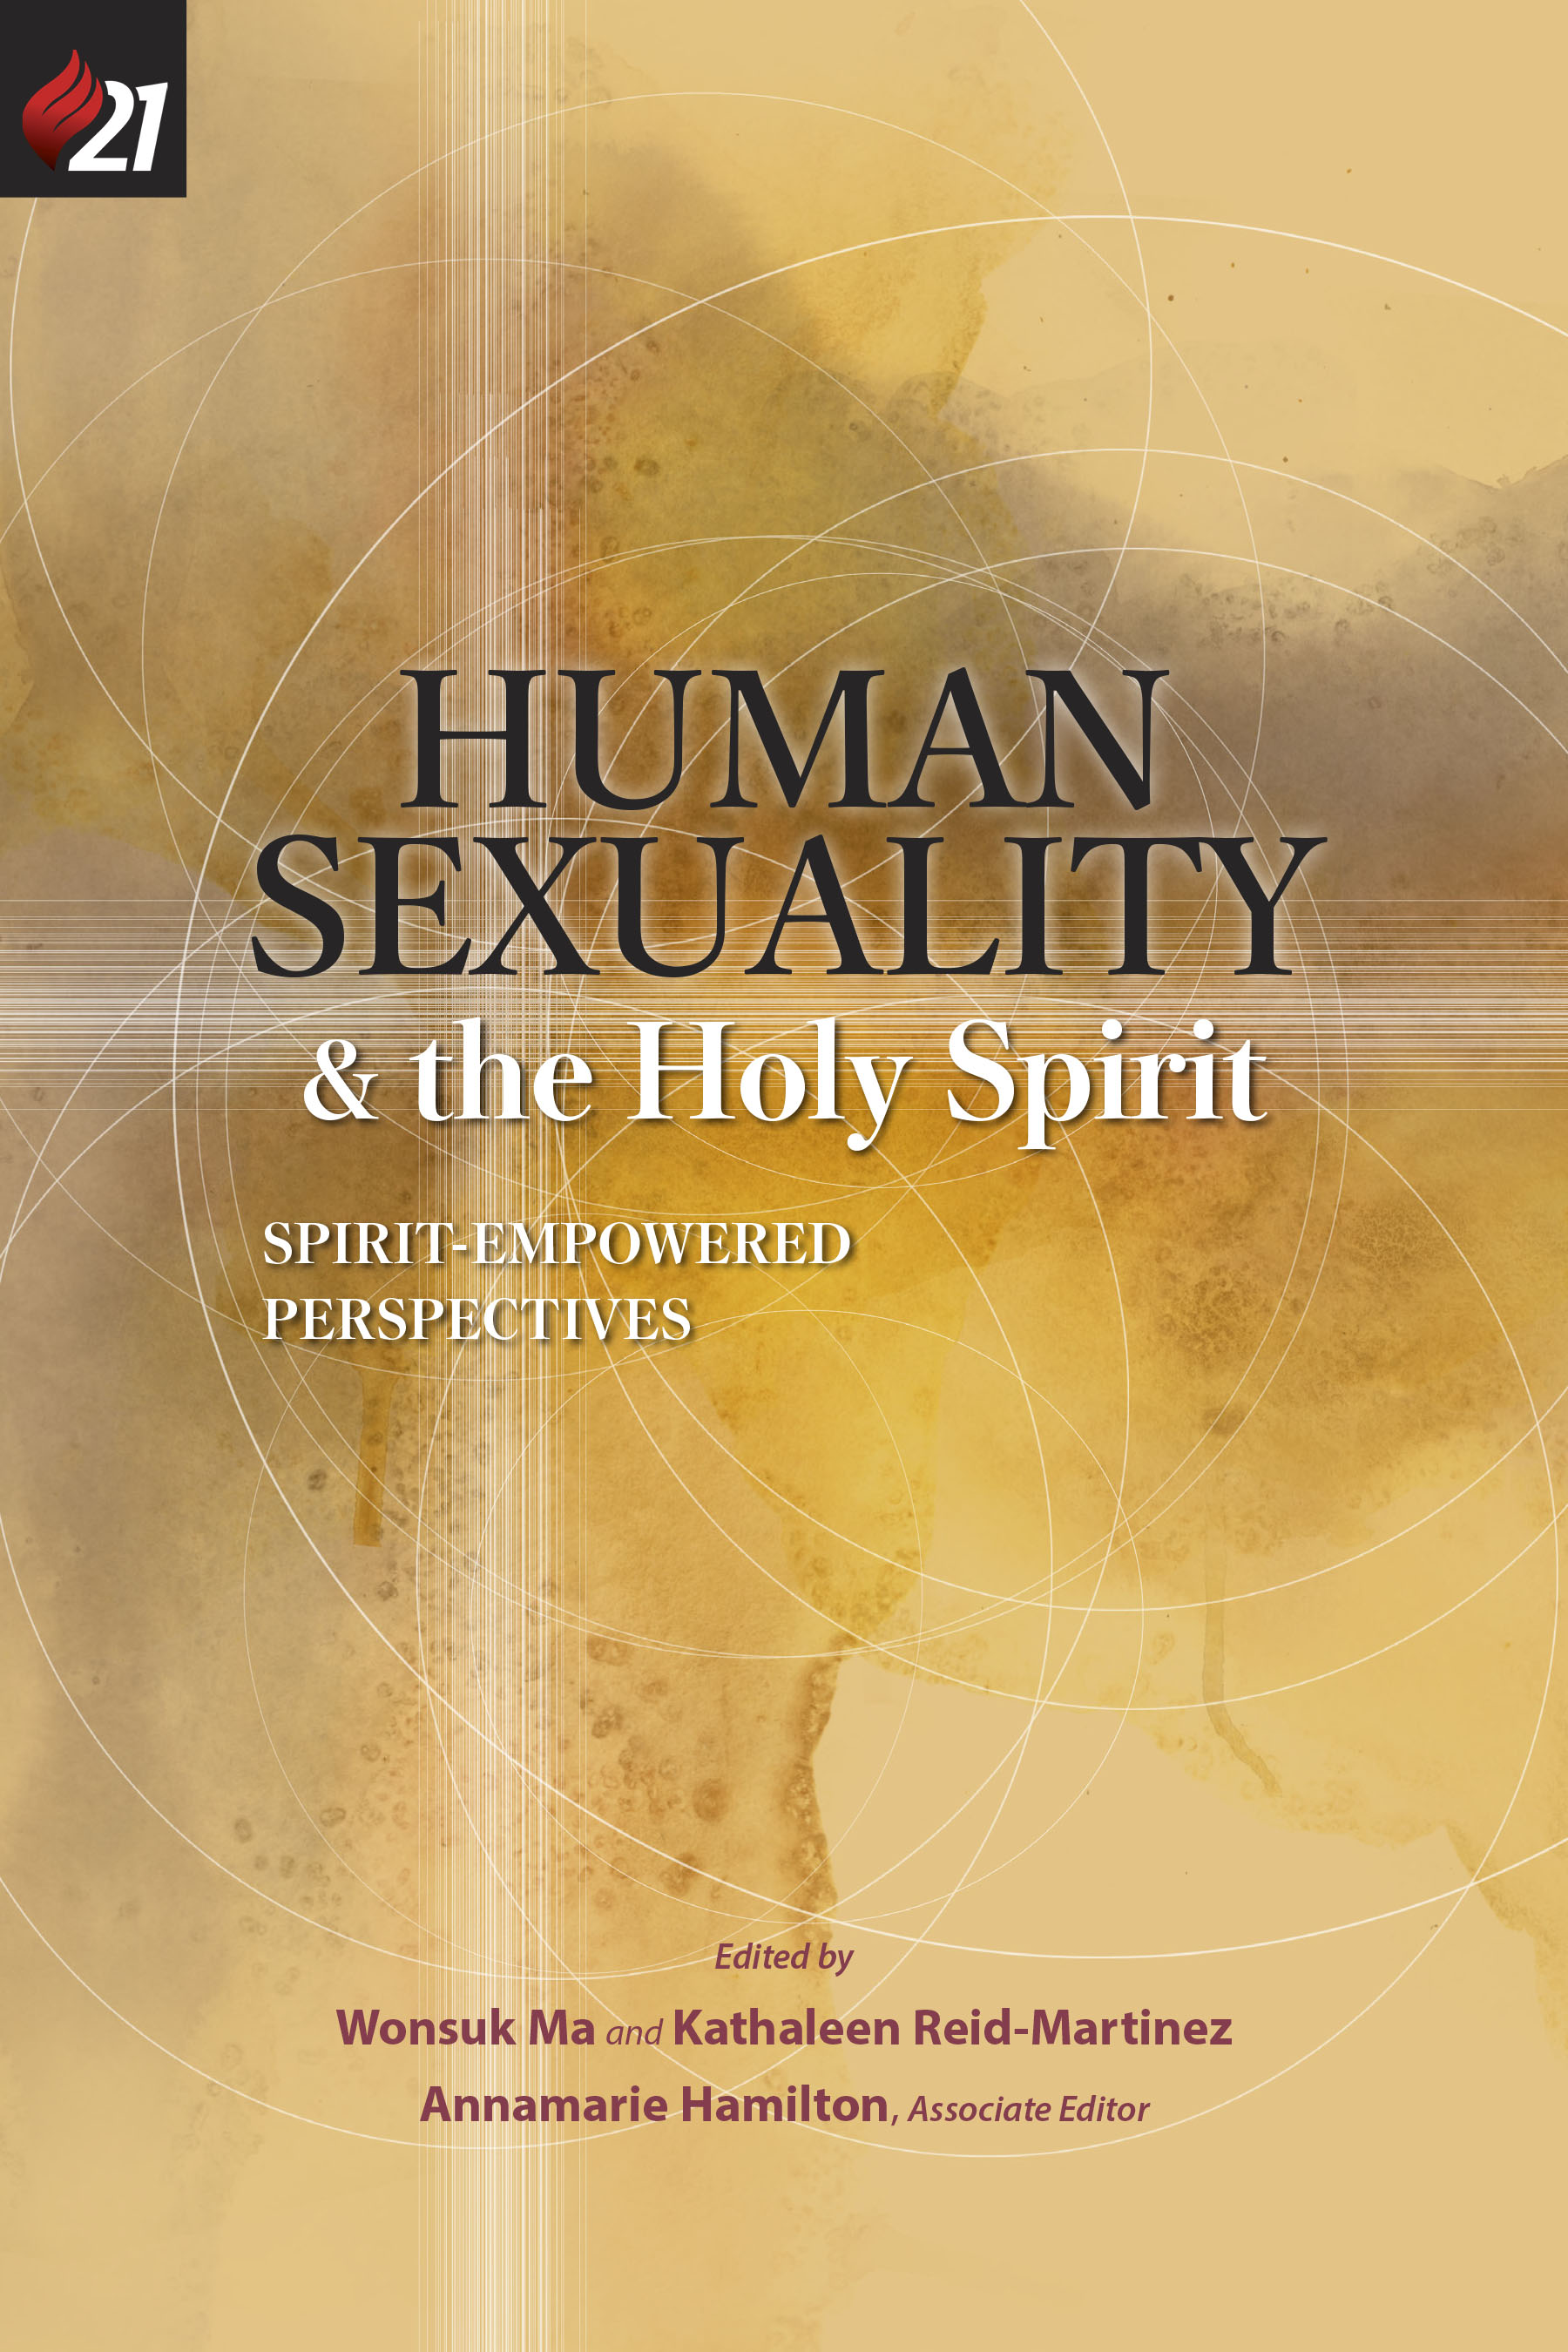 Human Sexuality and the Holy Spirit book jacket